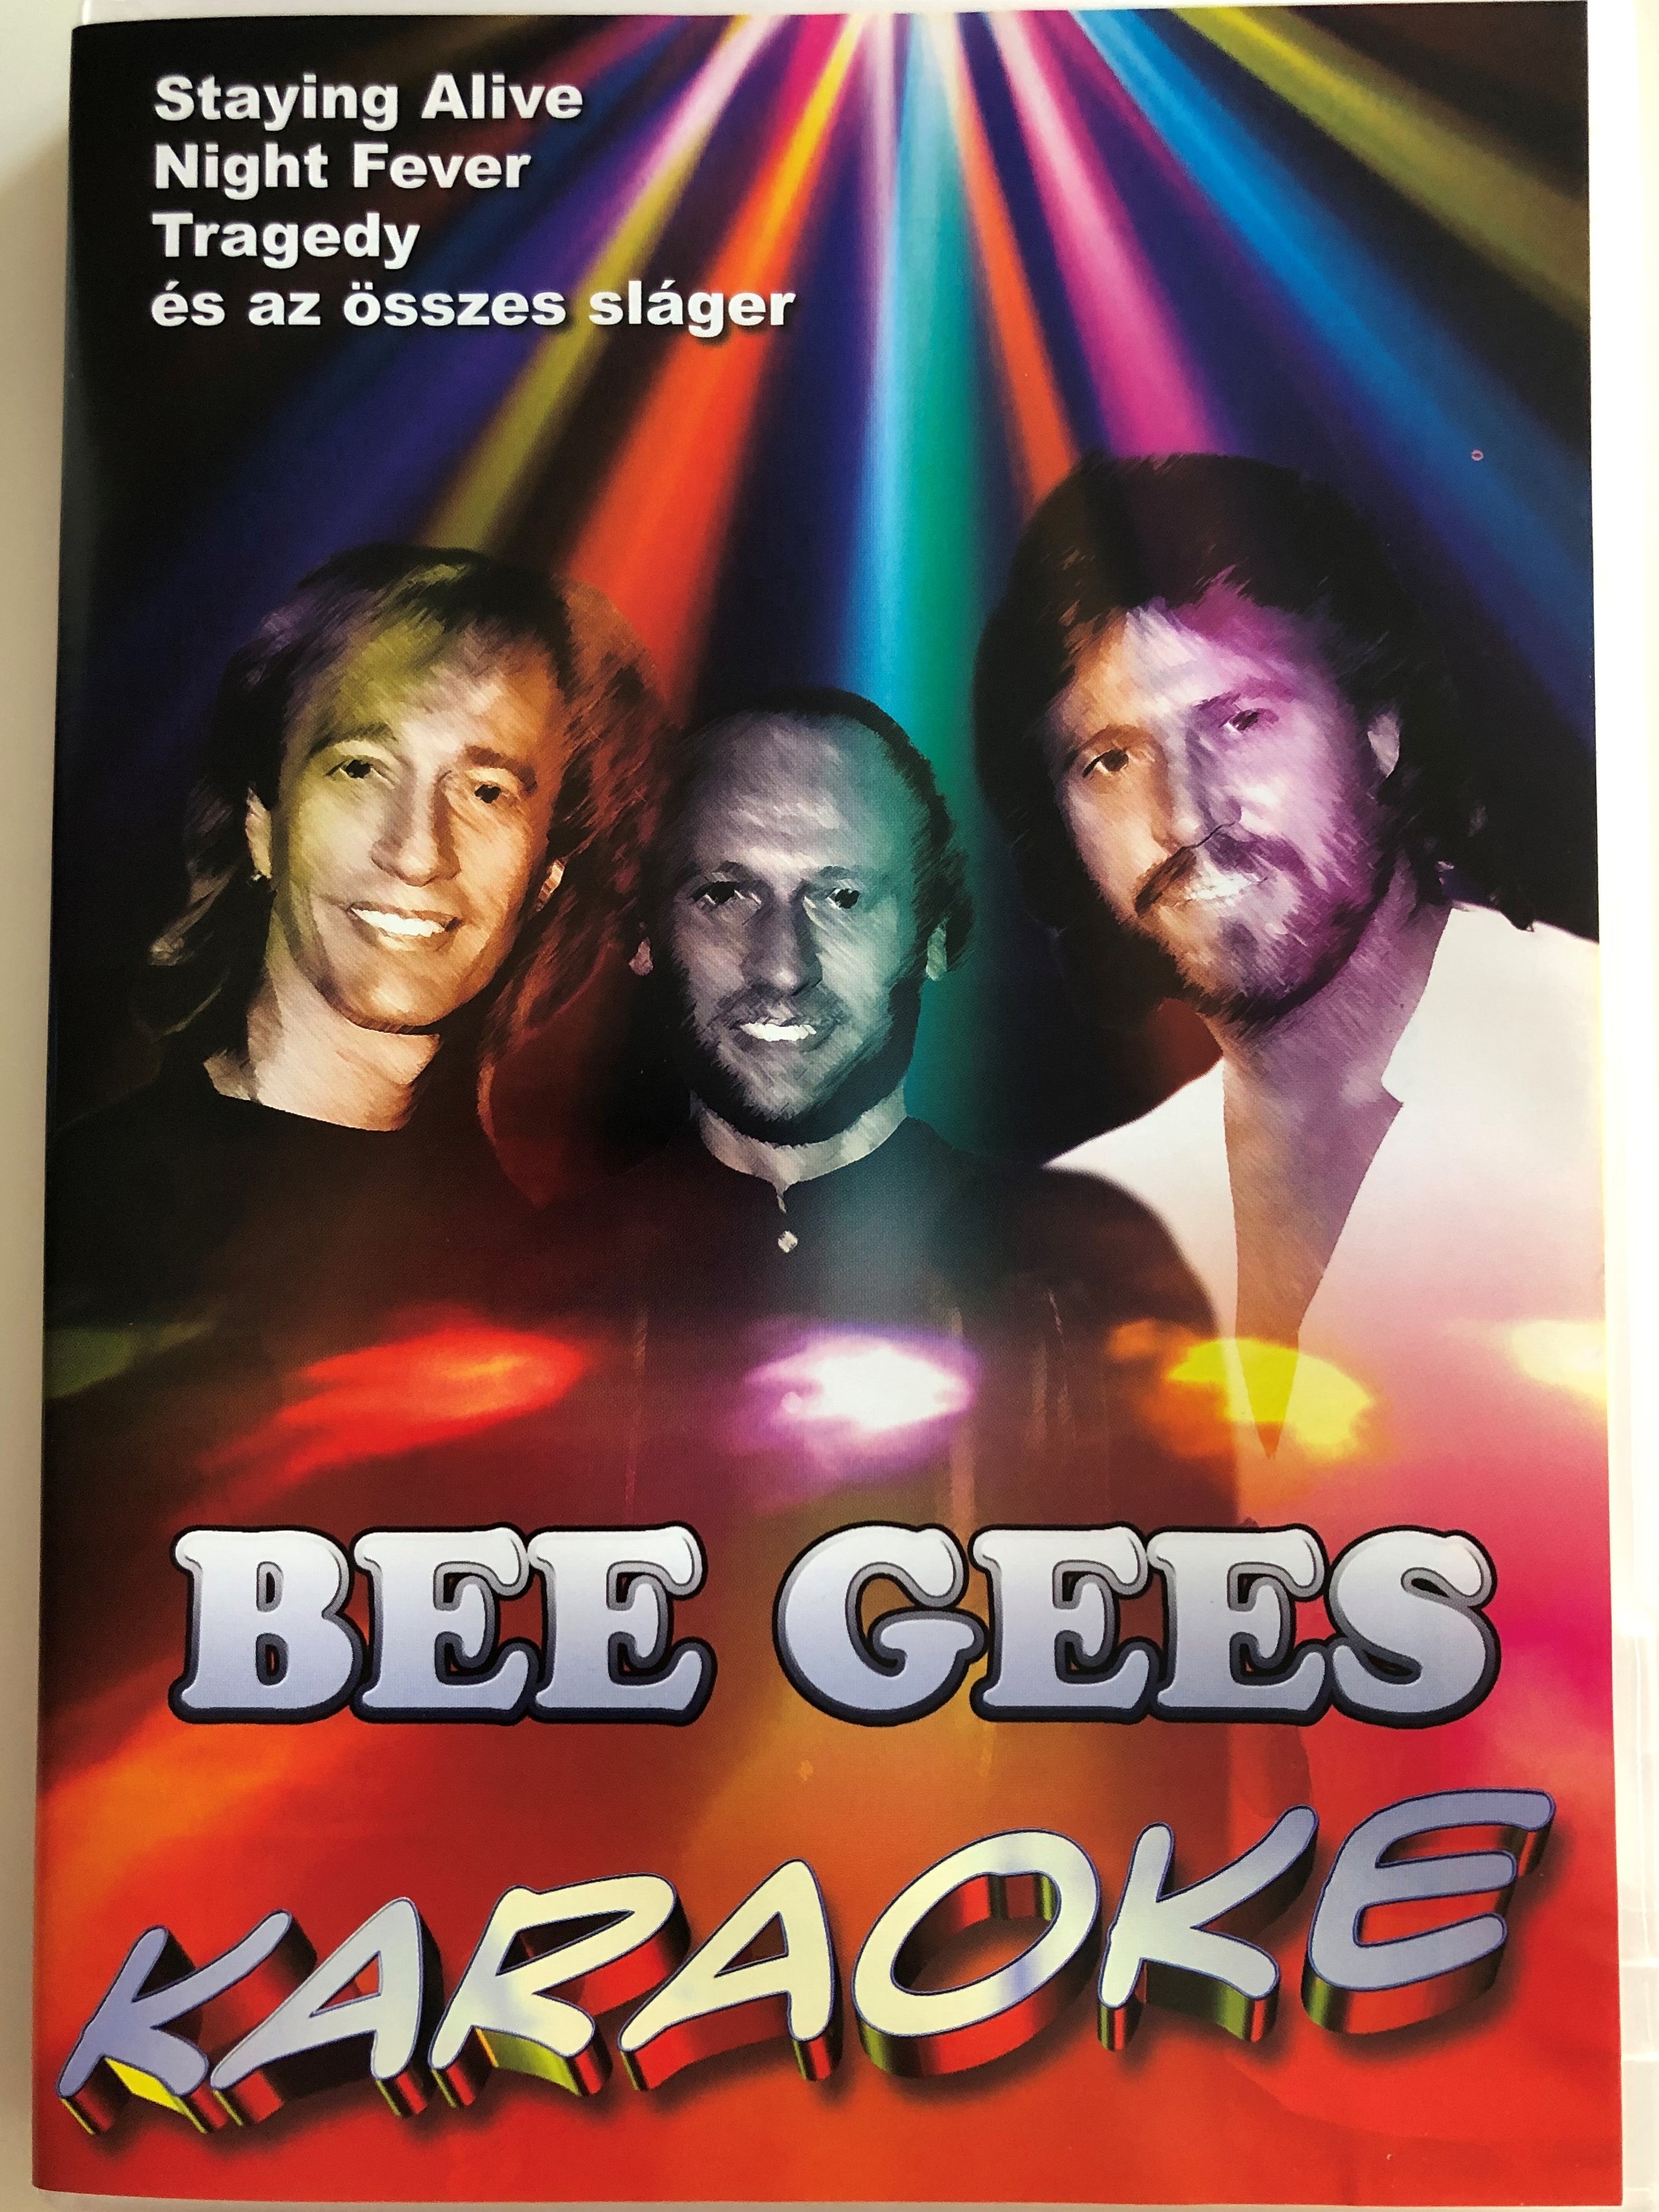 bee-gees-karaoke-dvd-staying-alive-night-fever-tragedy-s-az-sszes-sl-ger-sing-the-greatest-hits-1-.jpg